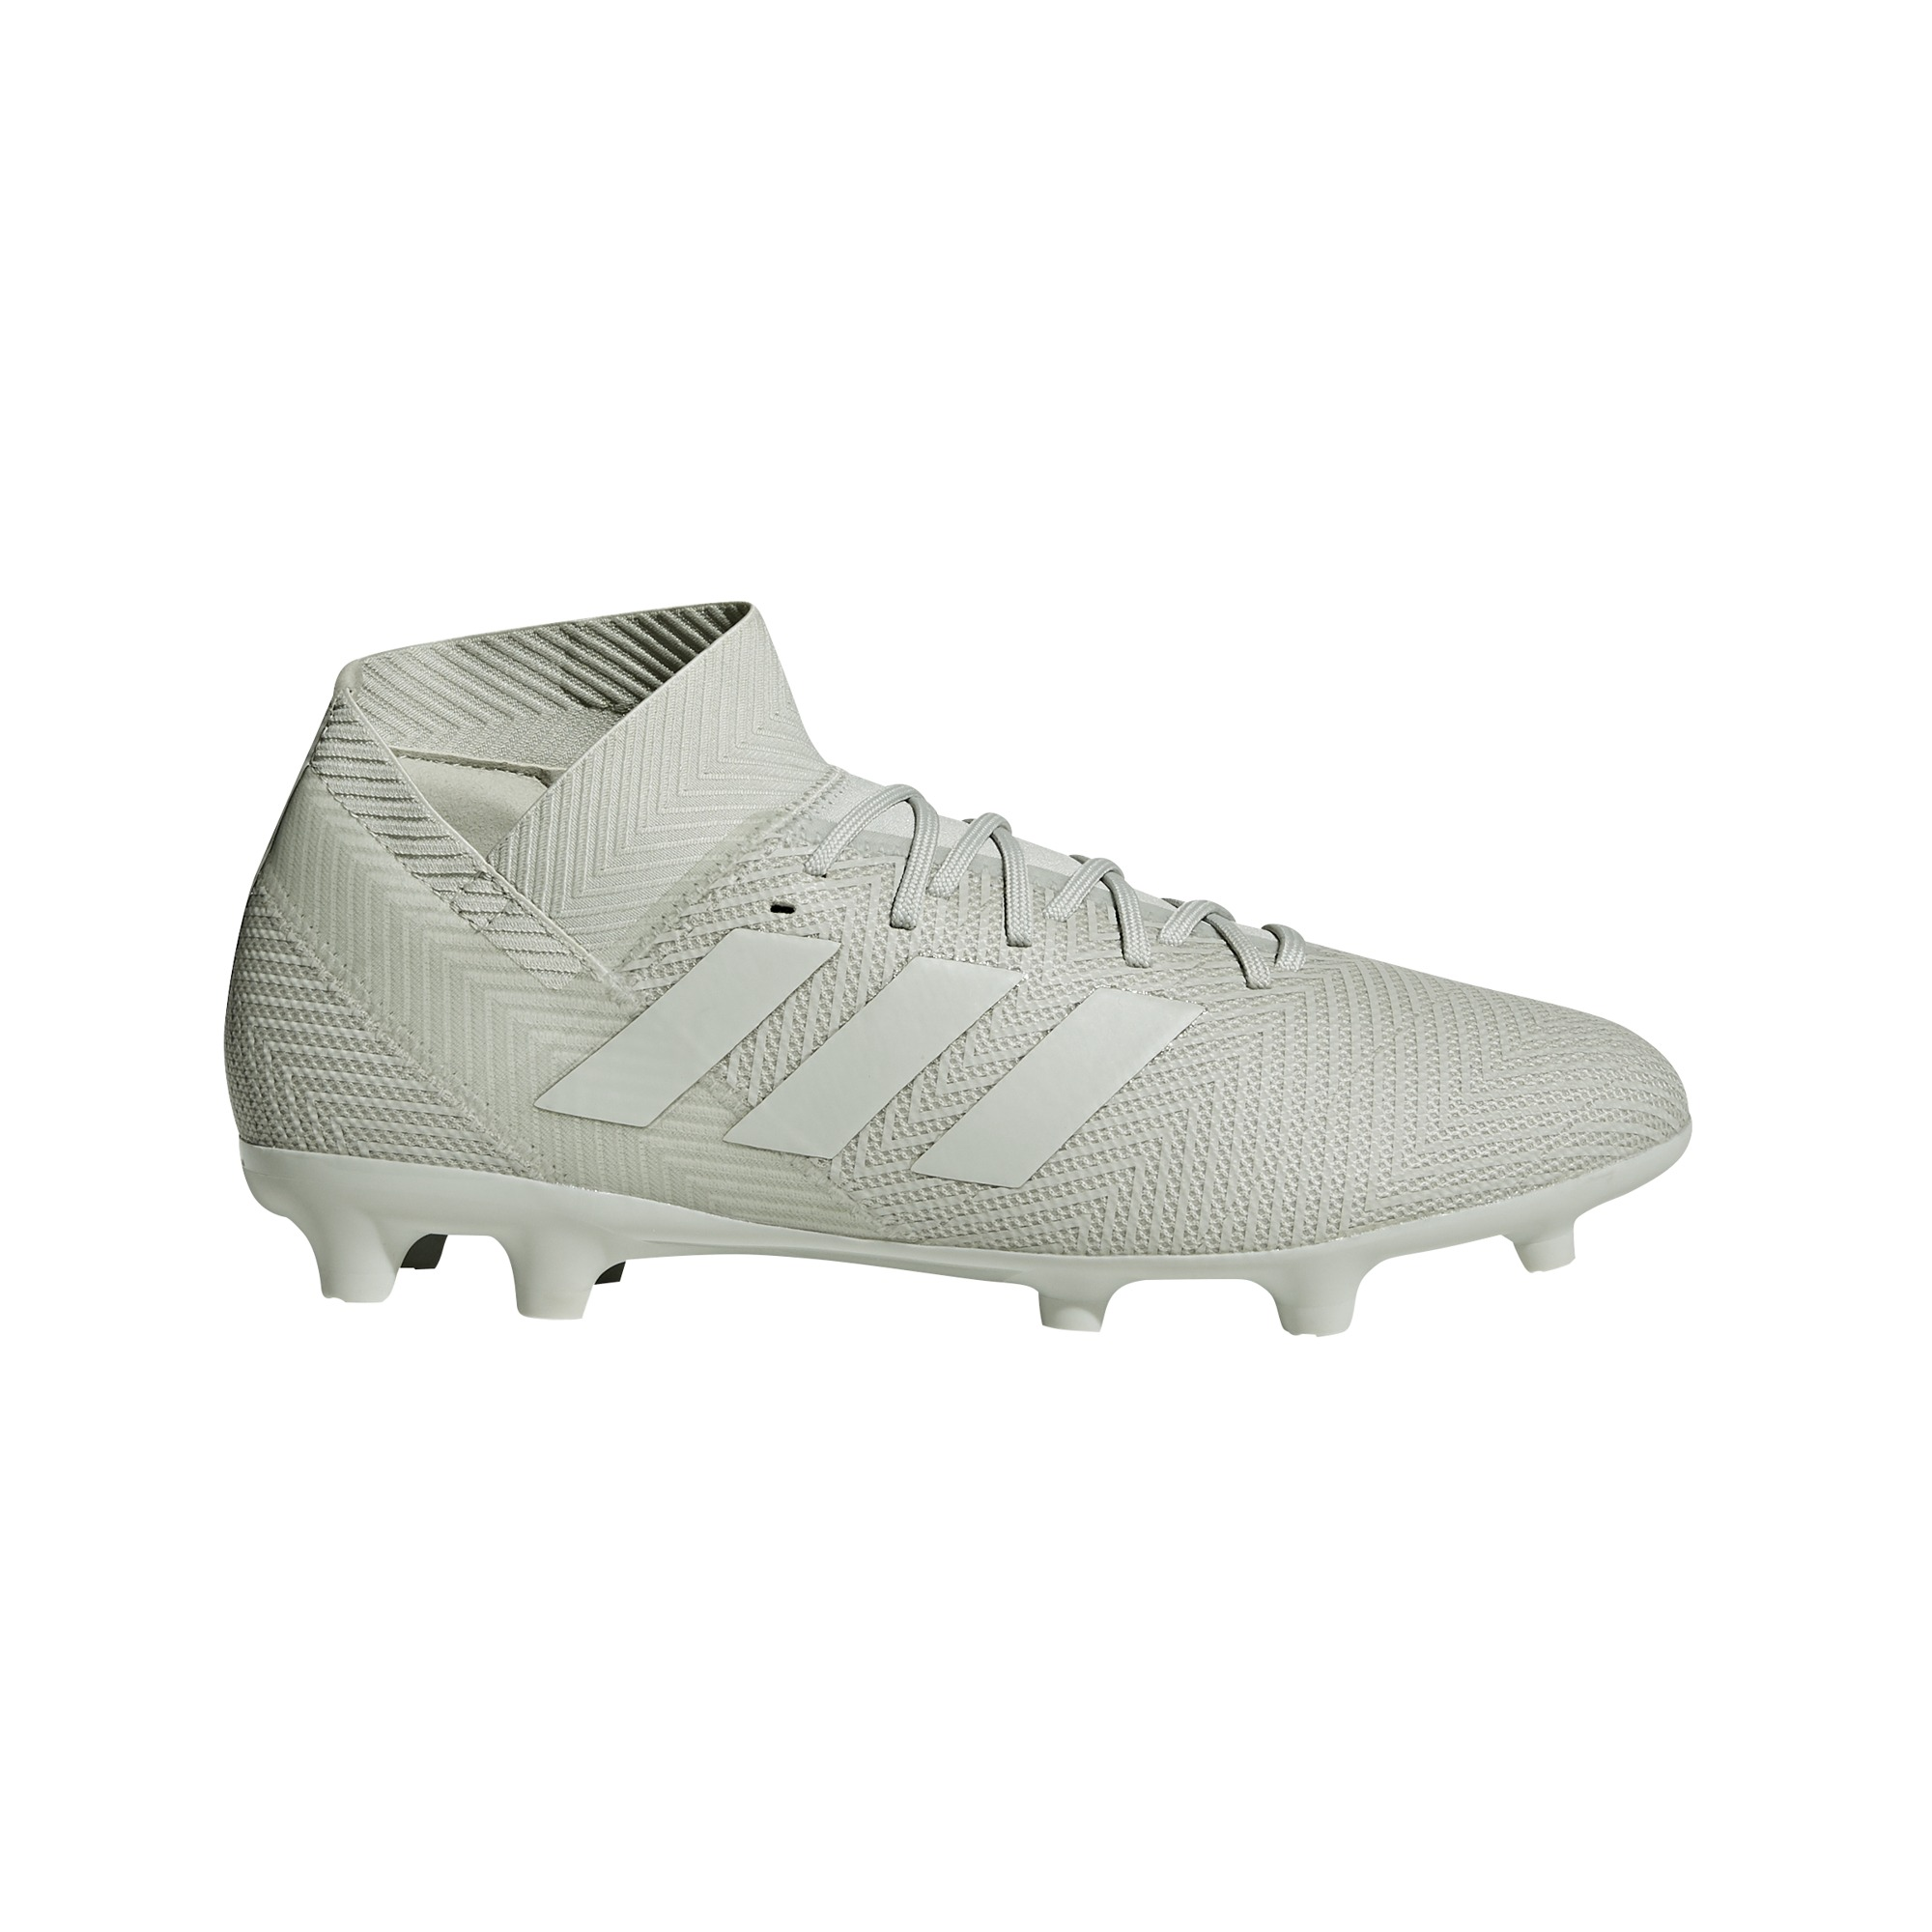 separation shoes 3c8fb ffd6e Soccer Solution Store  Nemeziz Soccer Boots 18.3 FG Ash silv